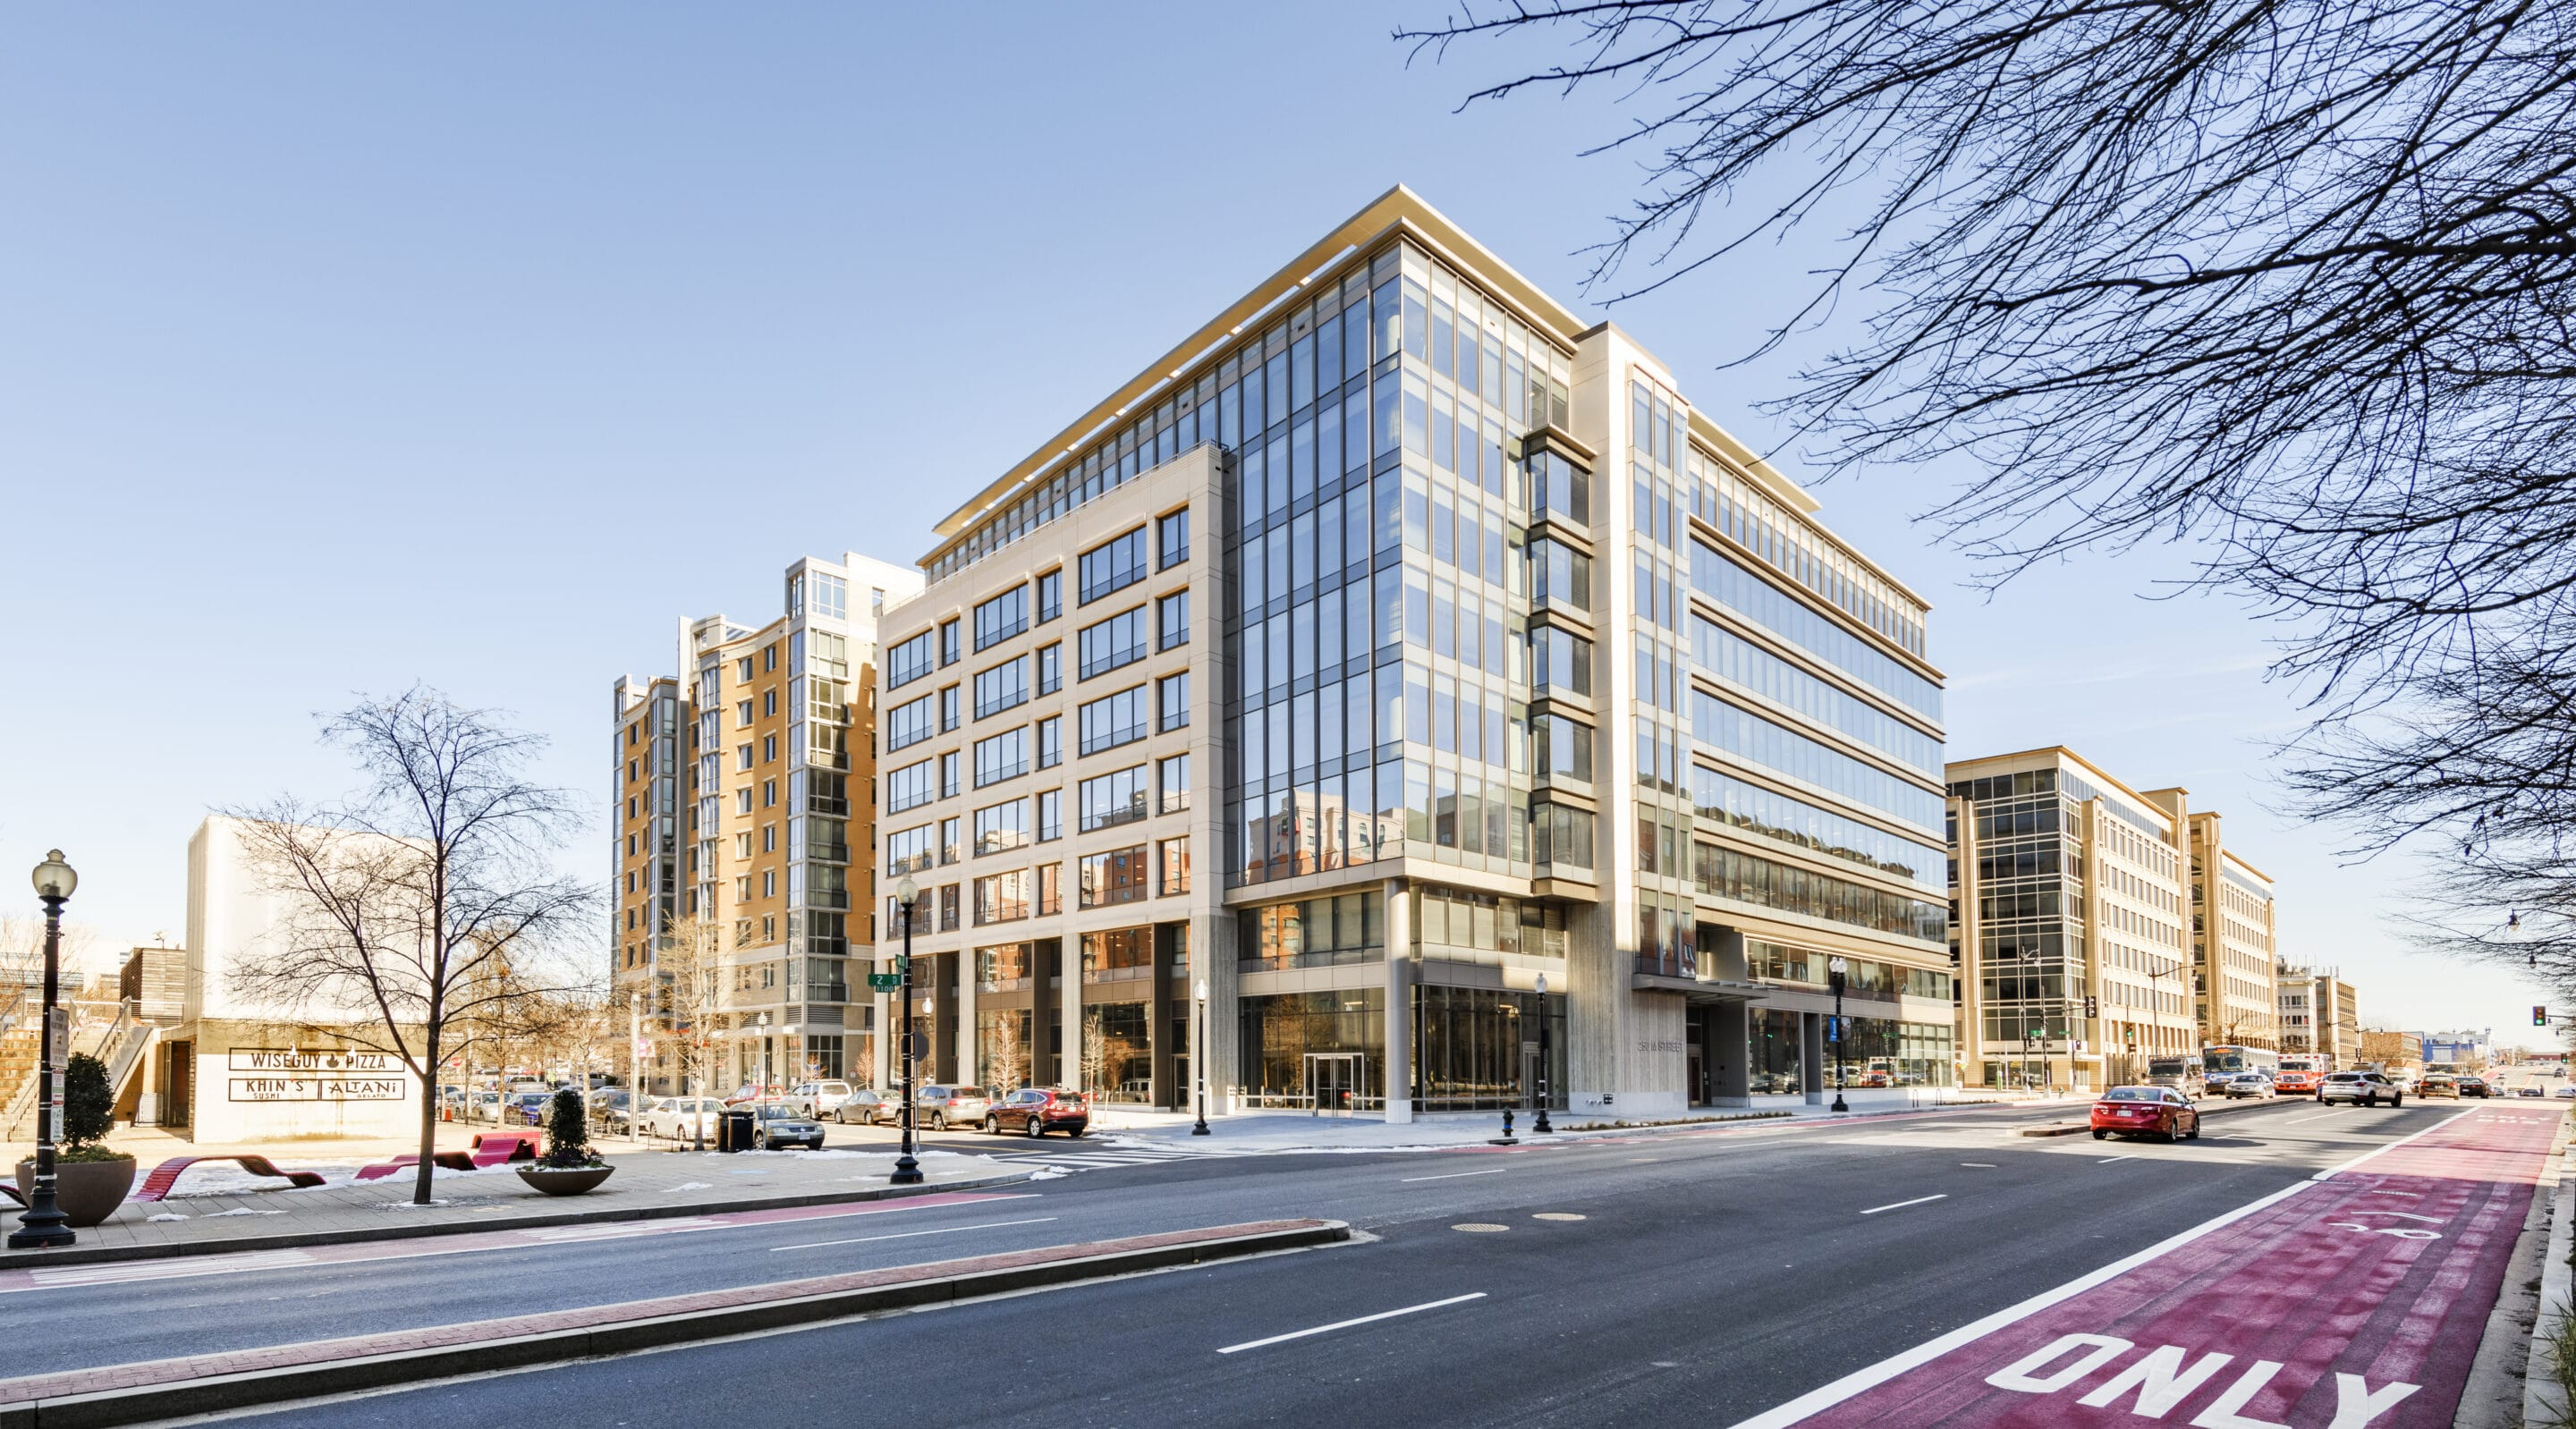 WC Smith Opens 250 M Street SE, New HQ for DC Dept. of Transportation